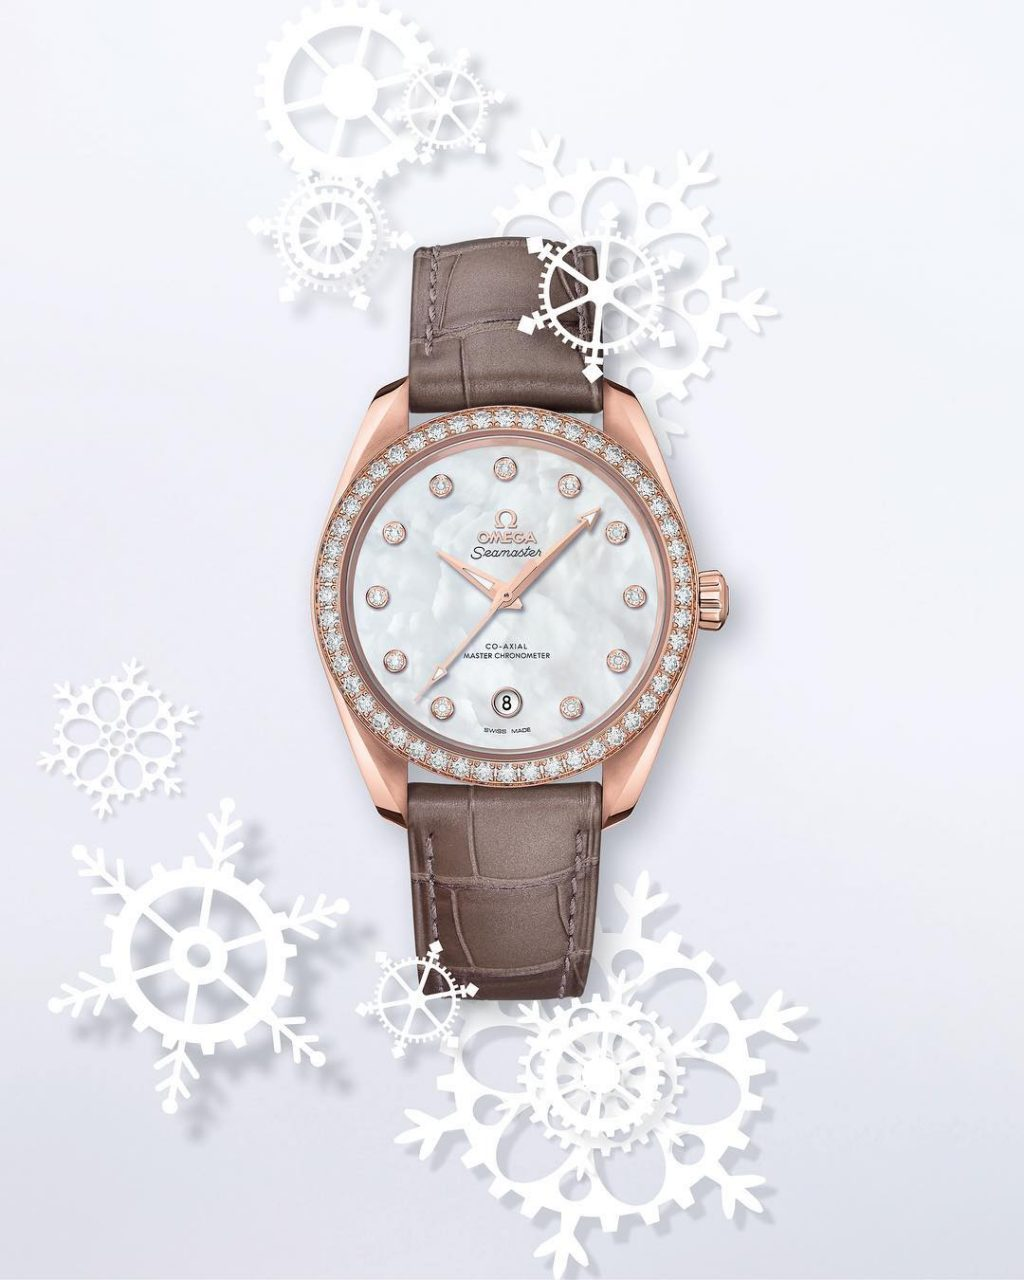 Discover Three Times More Christmas Magic, Courtesy of Omega Watches